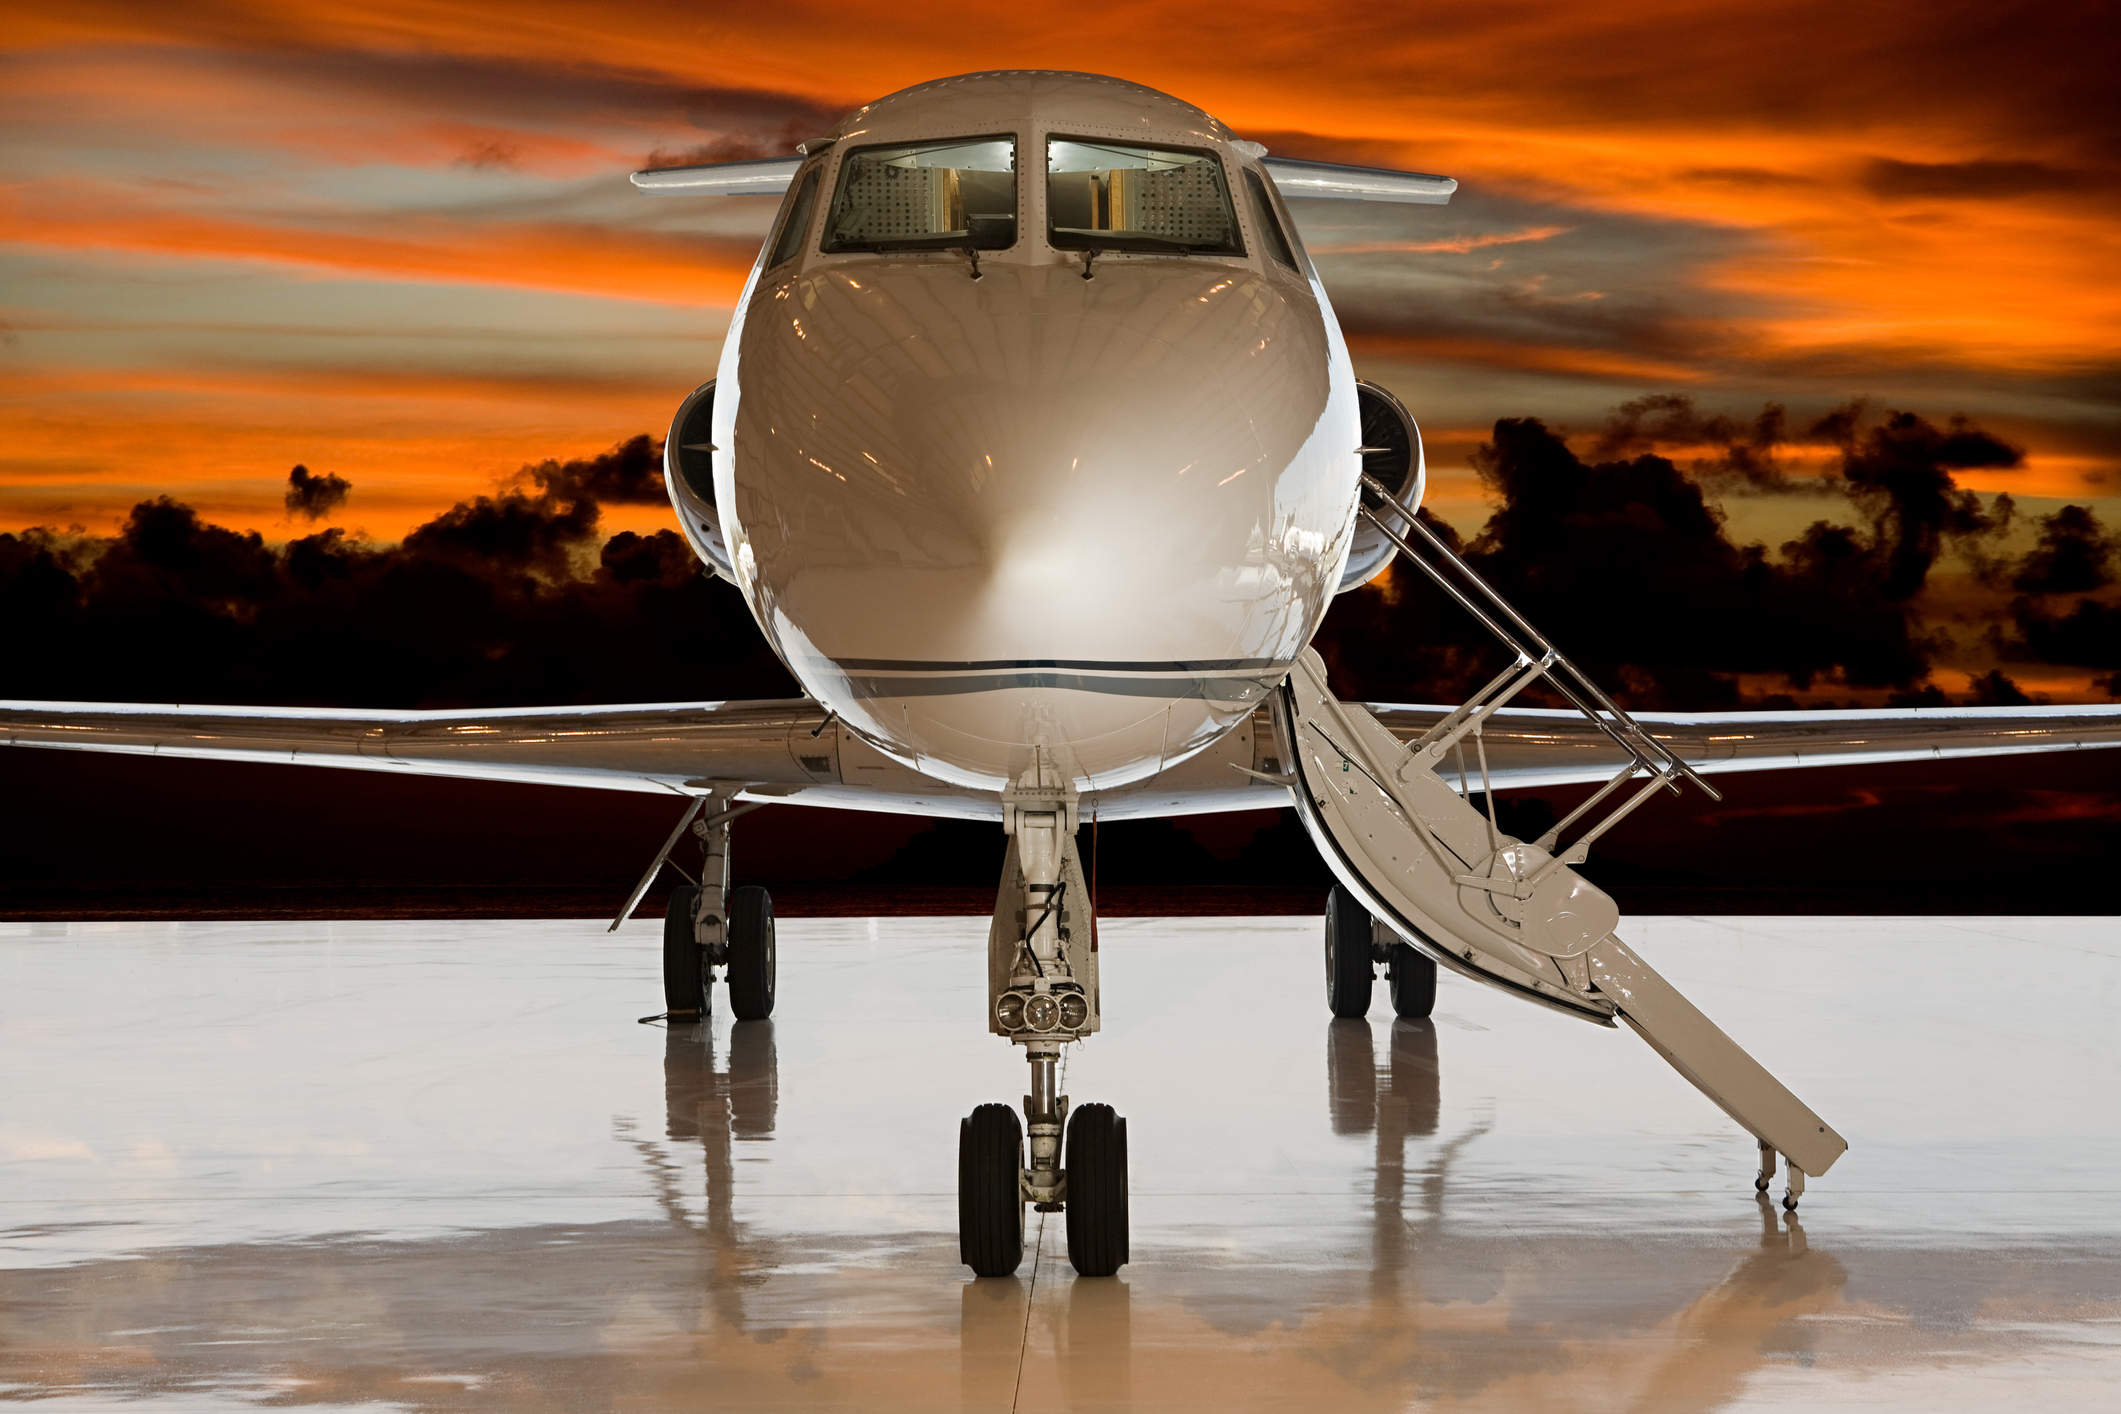 Online fraud increasing in private jet charter market, warns The ACA and EBAA